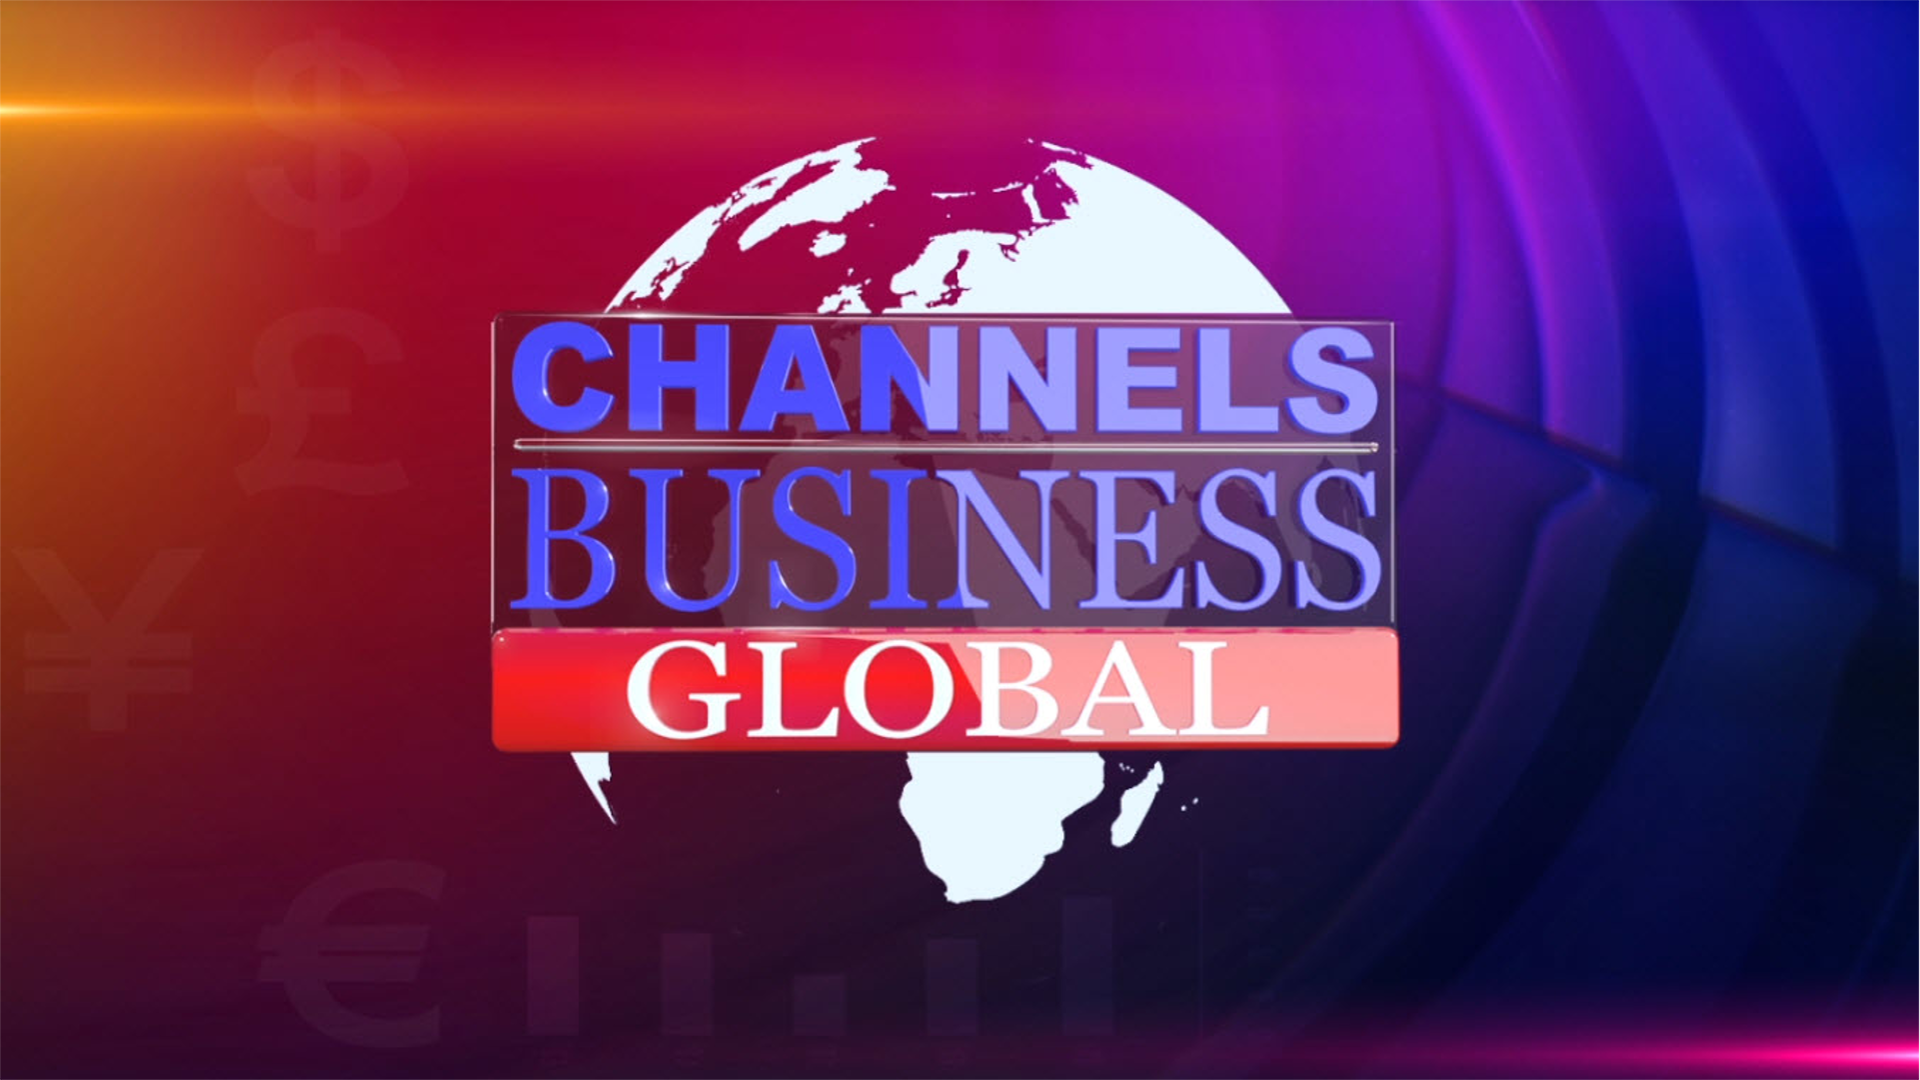 Launch Director: Channels Business Global